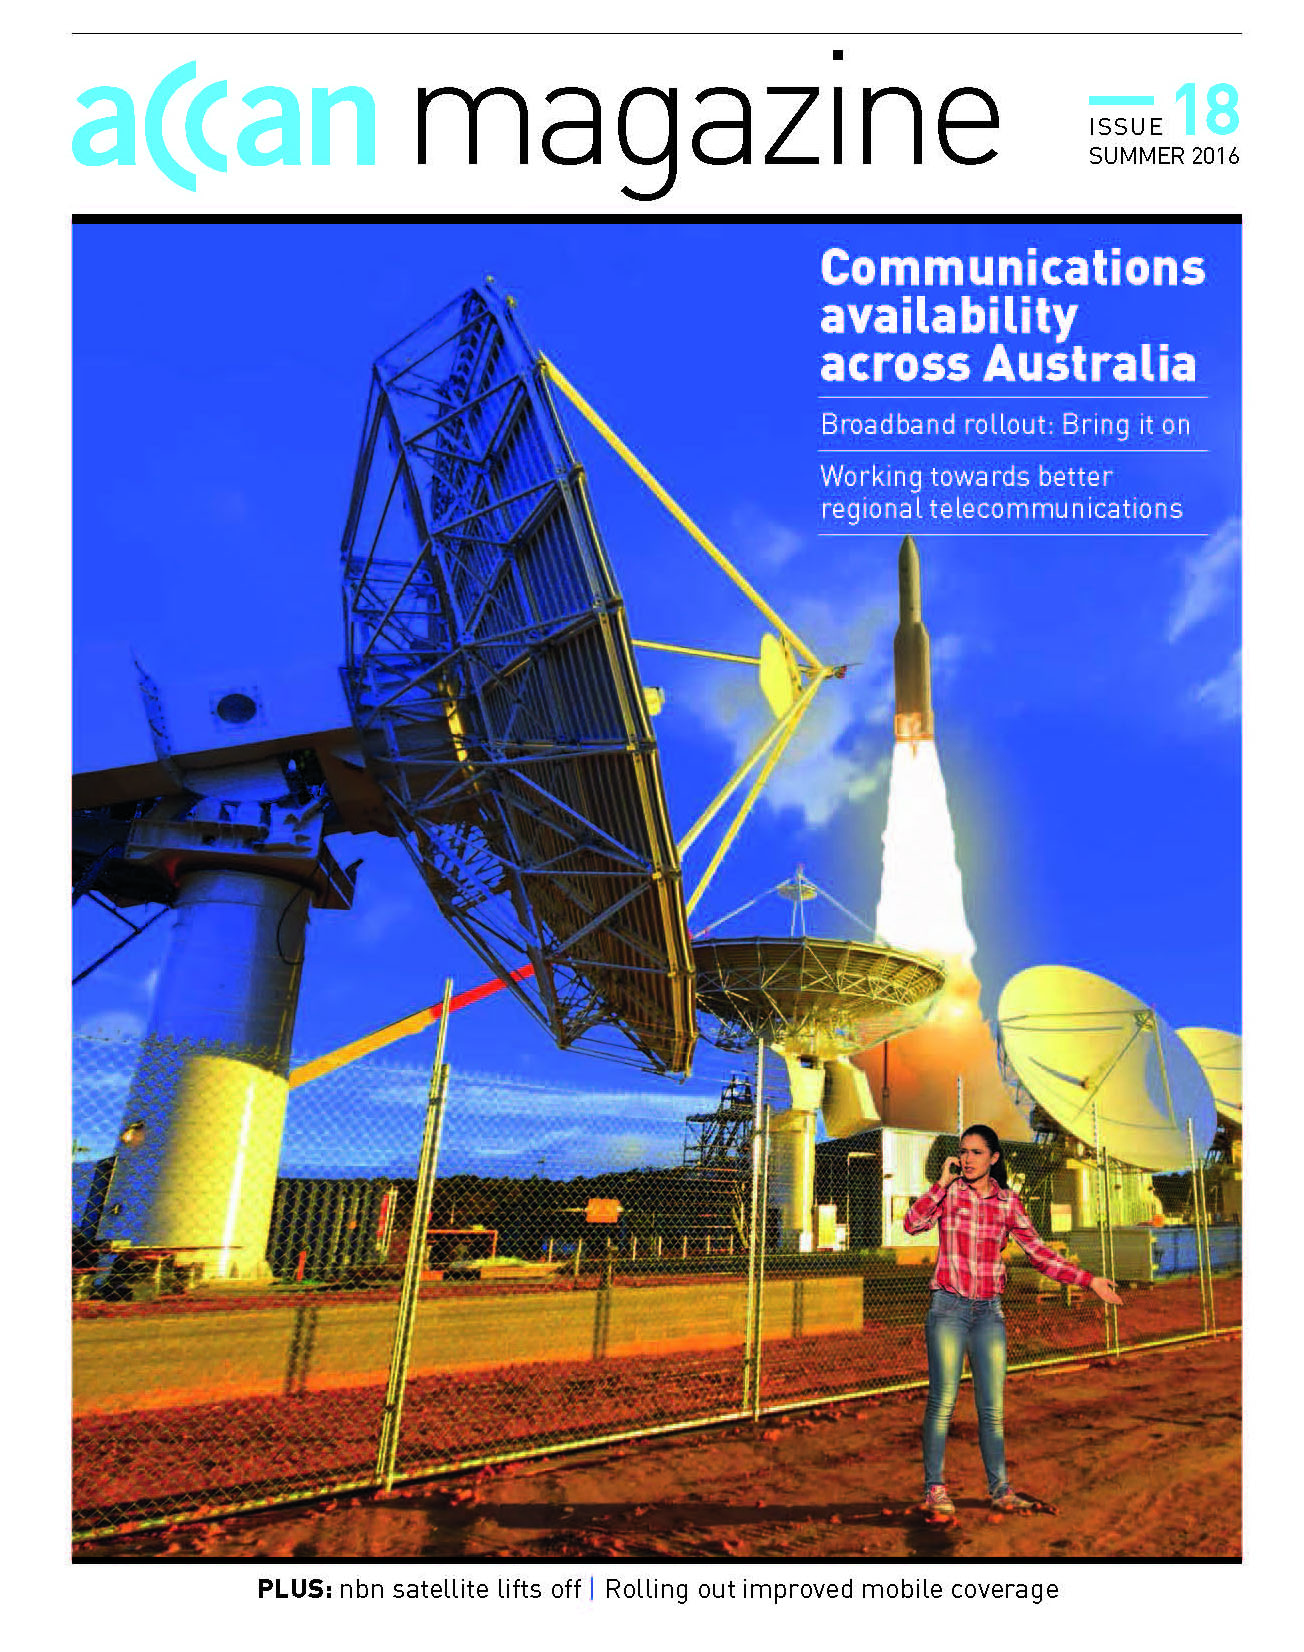 Communications availability across Australia cover